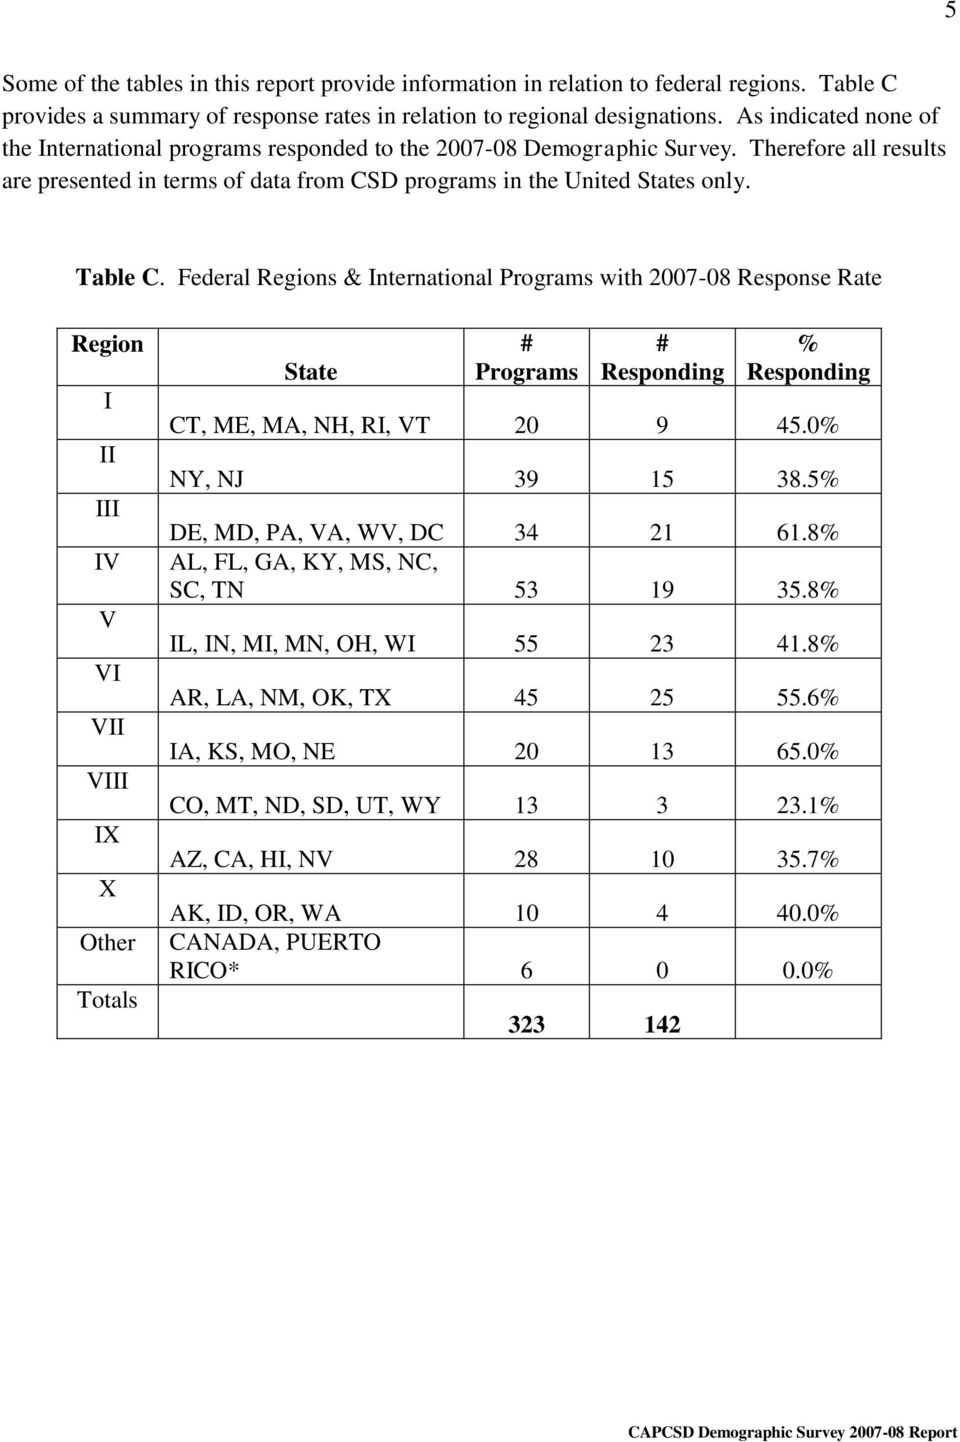 Federal Regions & International Programs with 2007-08 Response Rate Region I II III IV V VI VII VIII IX X Other Totals State # Programs # Responding % Responding CT, ME, MA, NH, RI, VT 20 9 45.